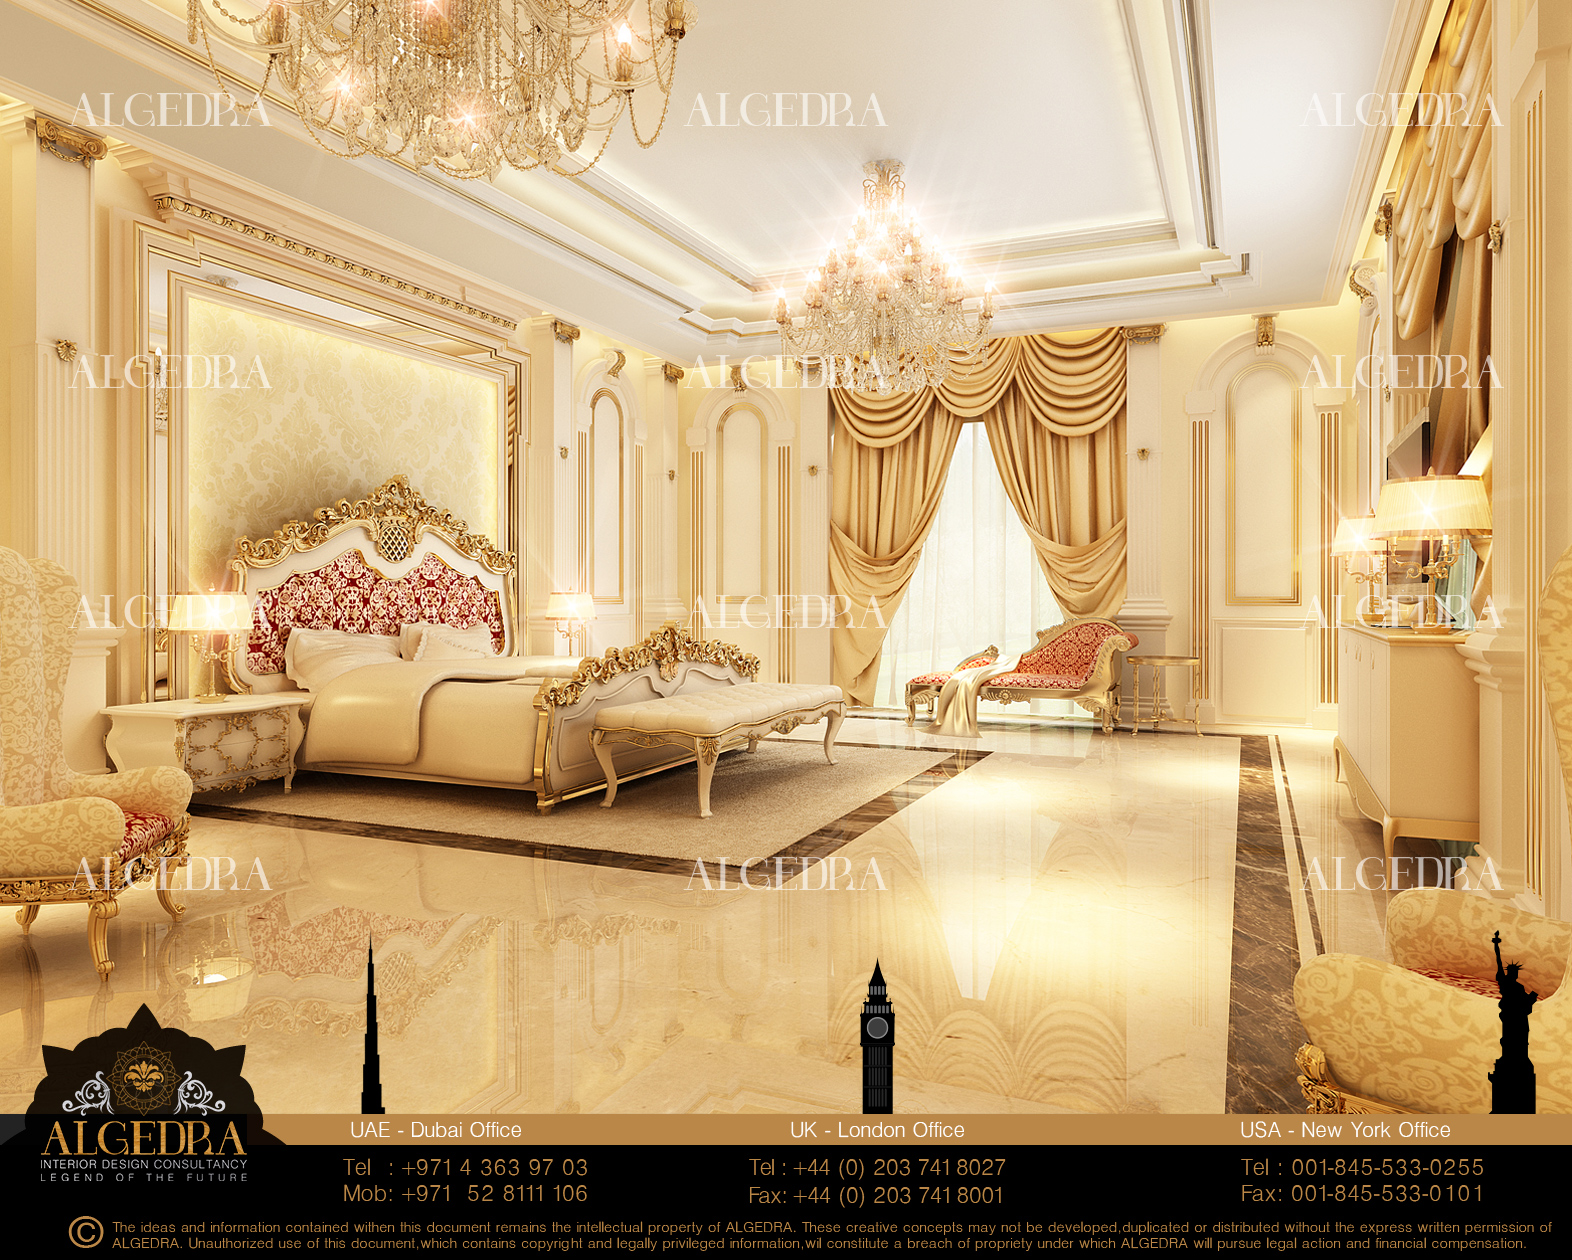 Master Bedroom By Algedra By Algedra Interior Design At